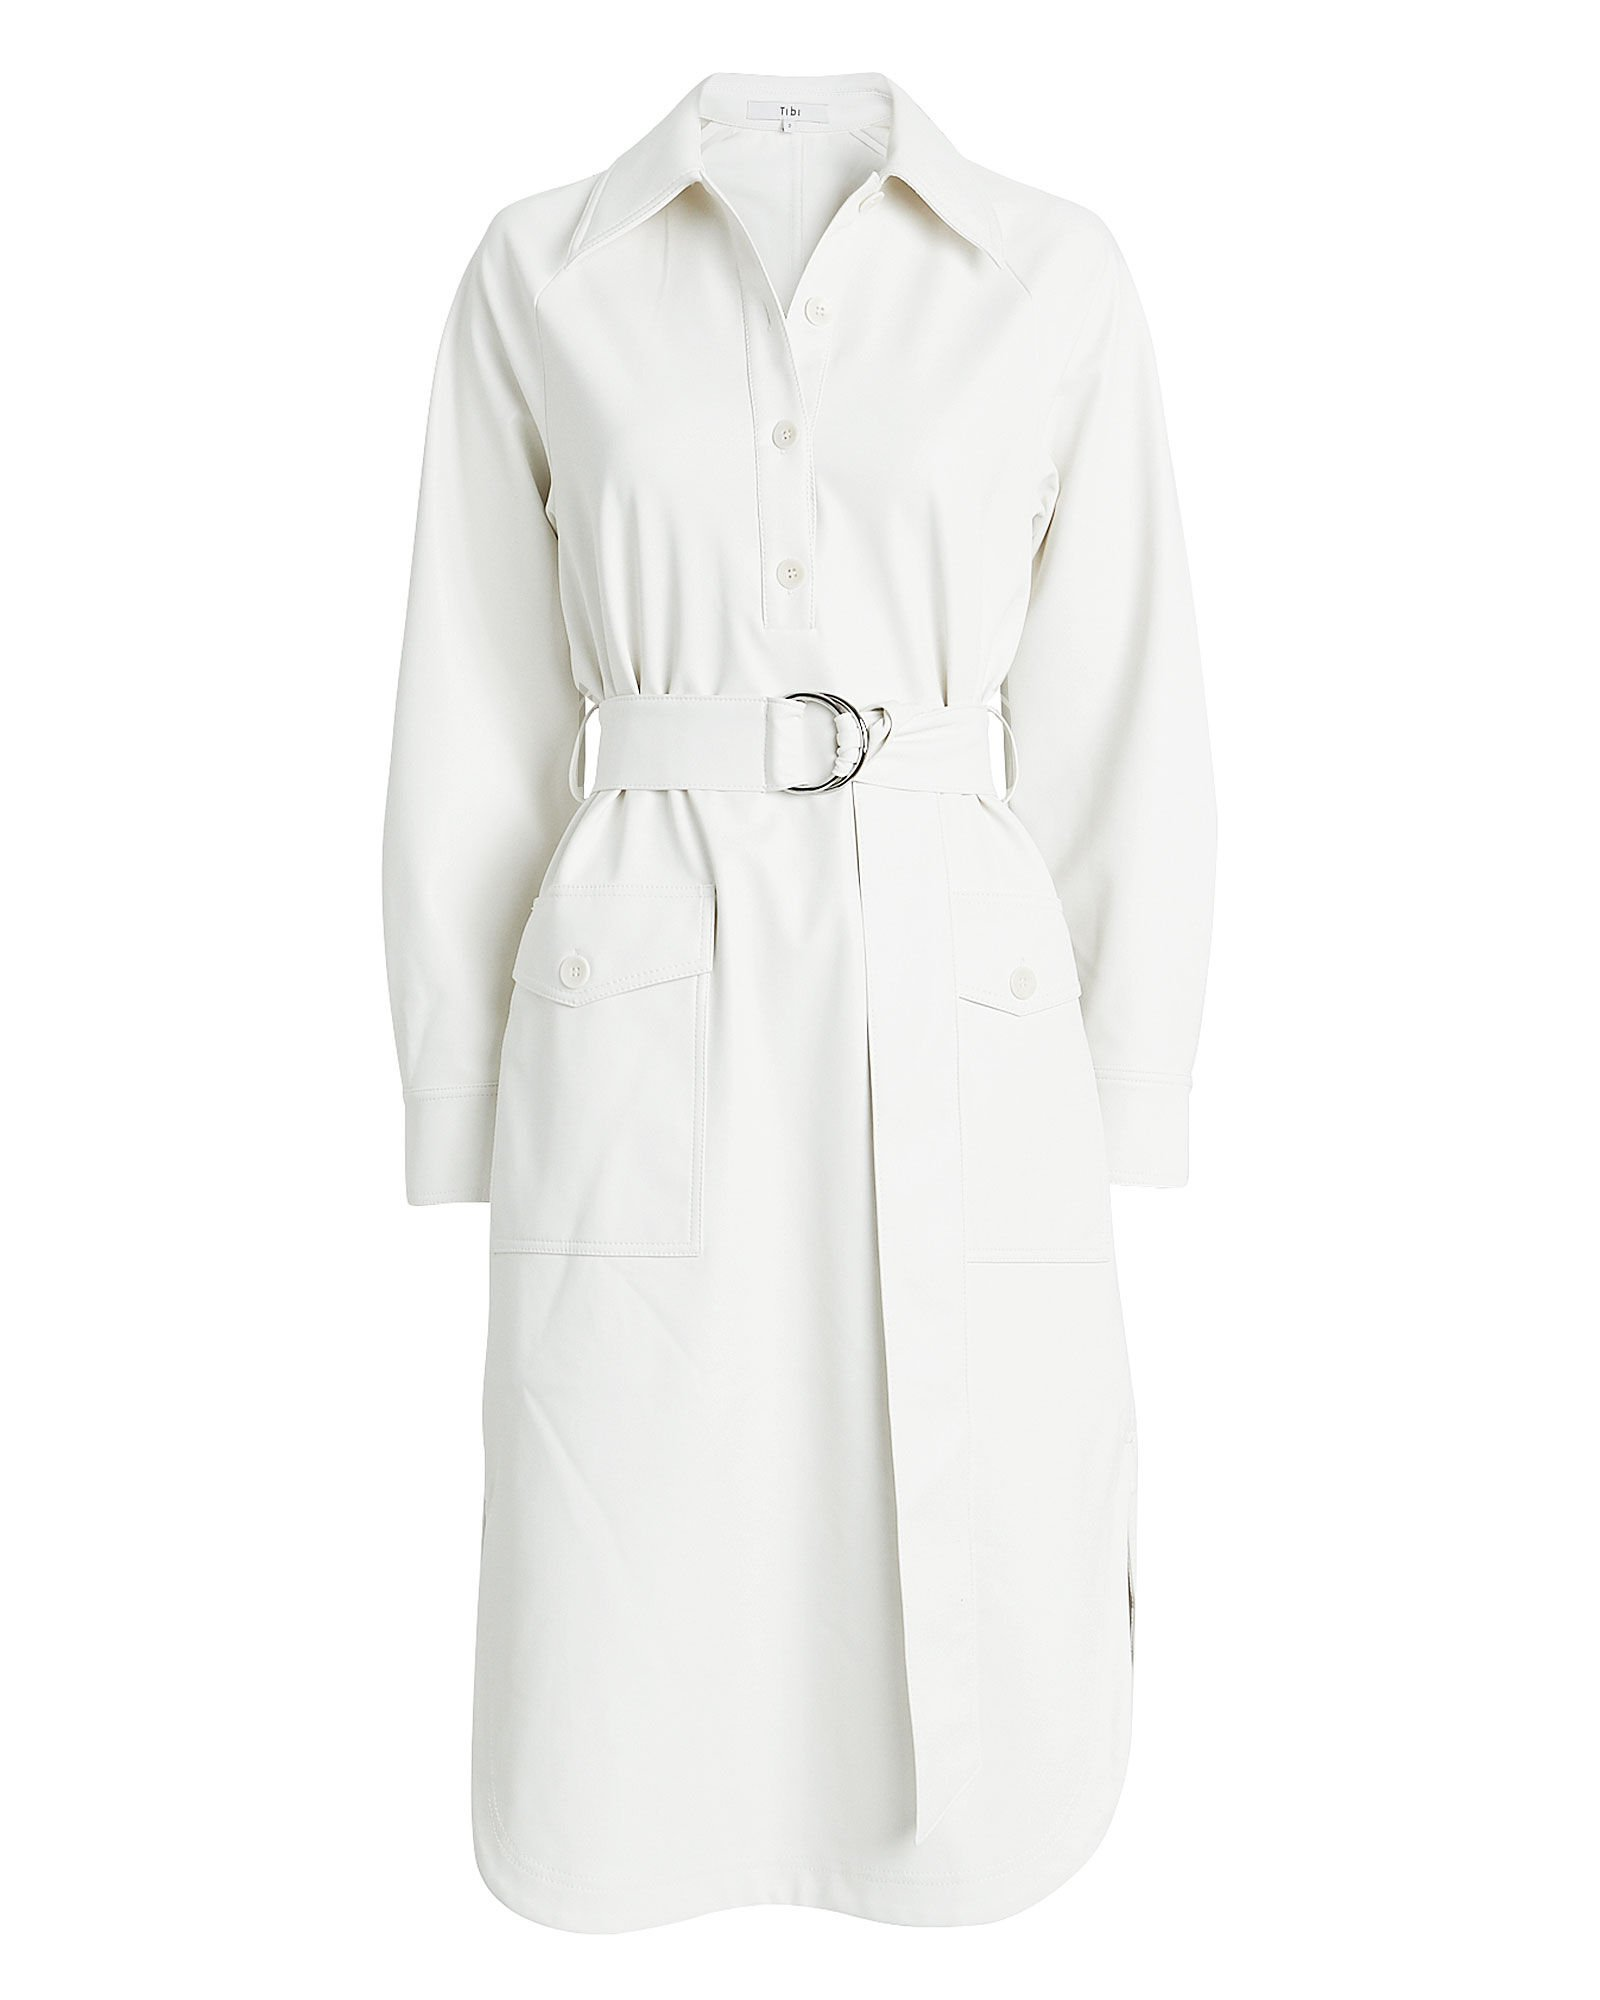 Tibi | Faux Leather Belted Shirt Dress | INTERMIX®